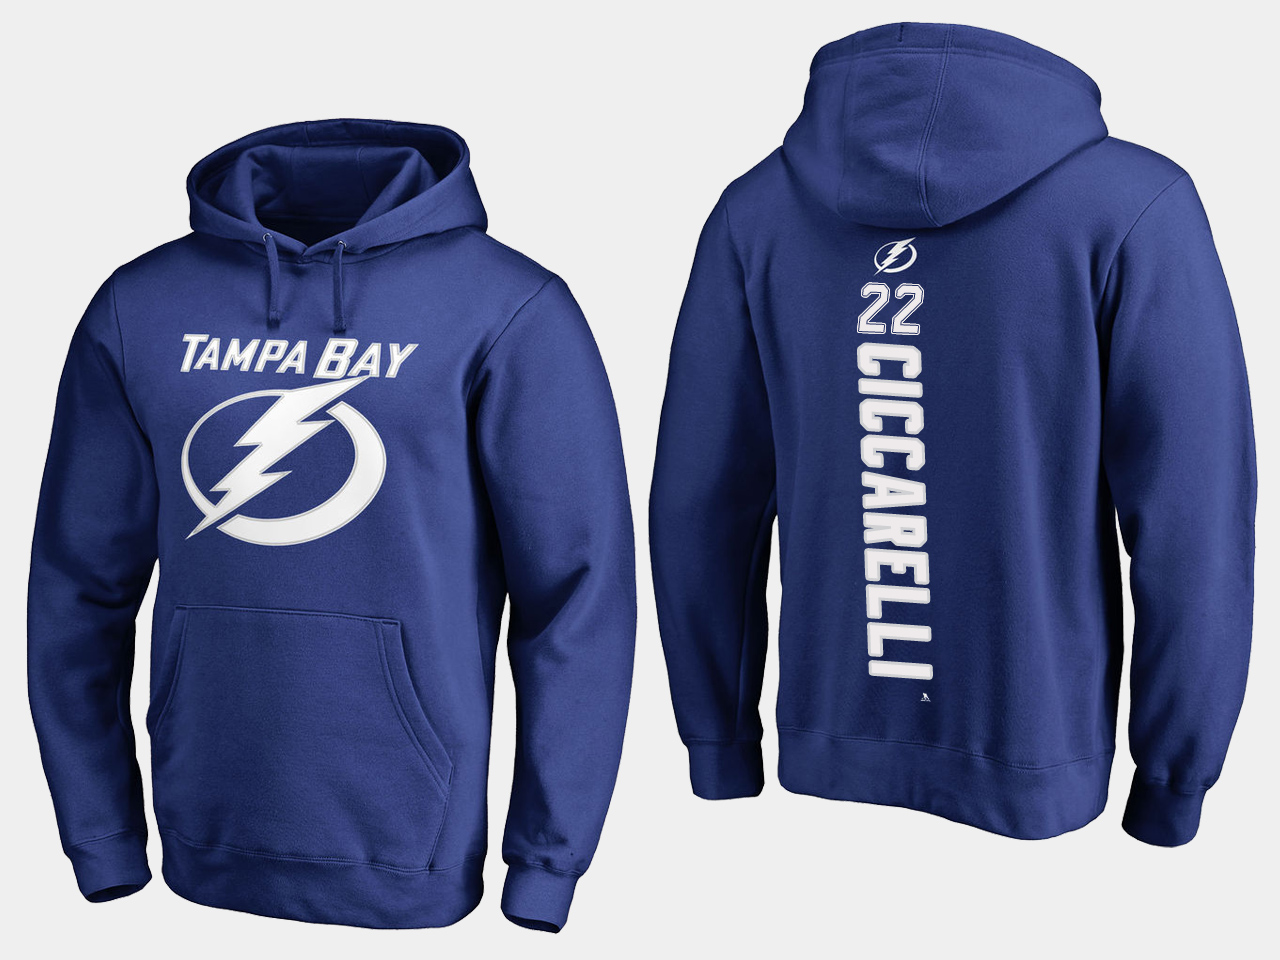 NHL Men adidas Tampa Bay Lightning 22 Ciccarelli blue hoodie